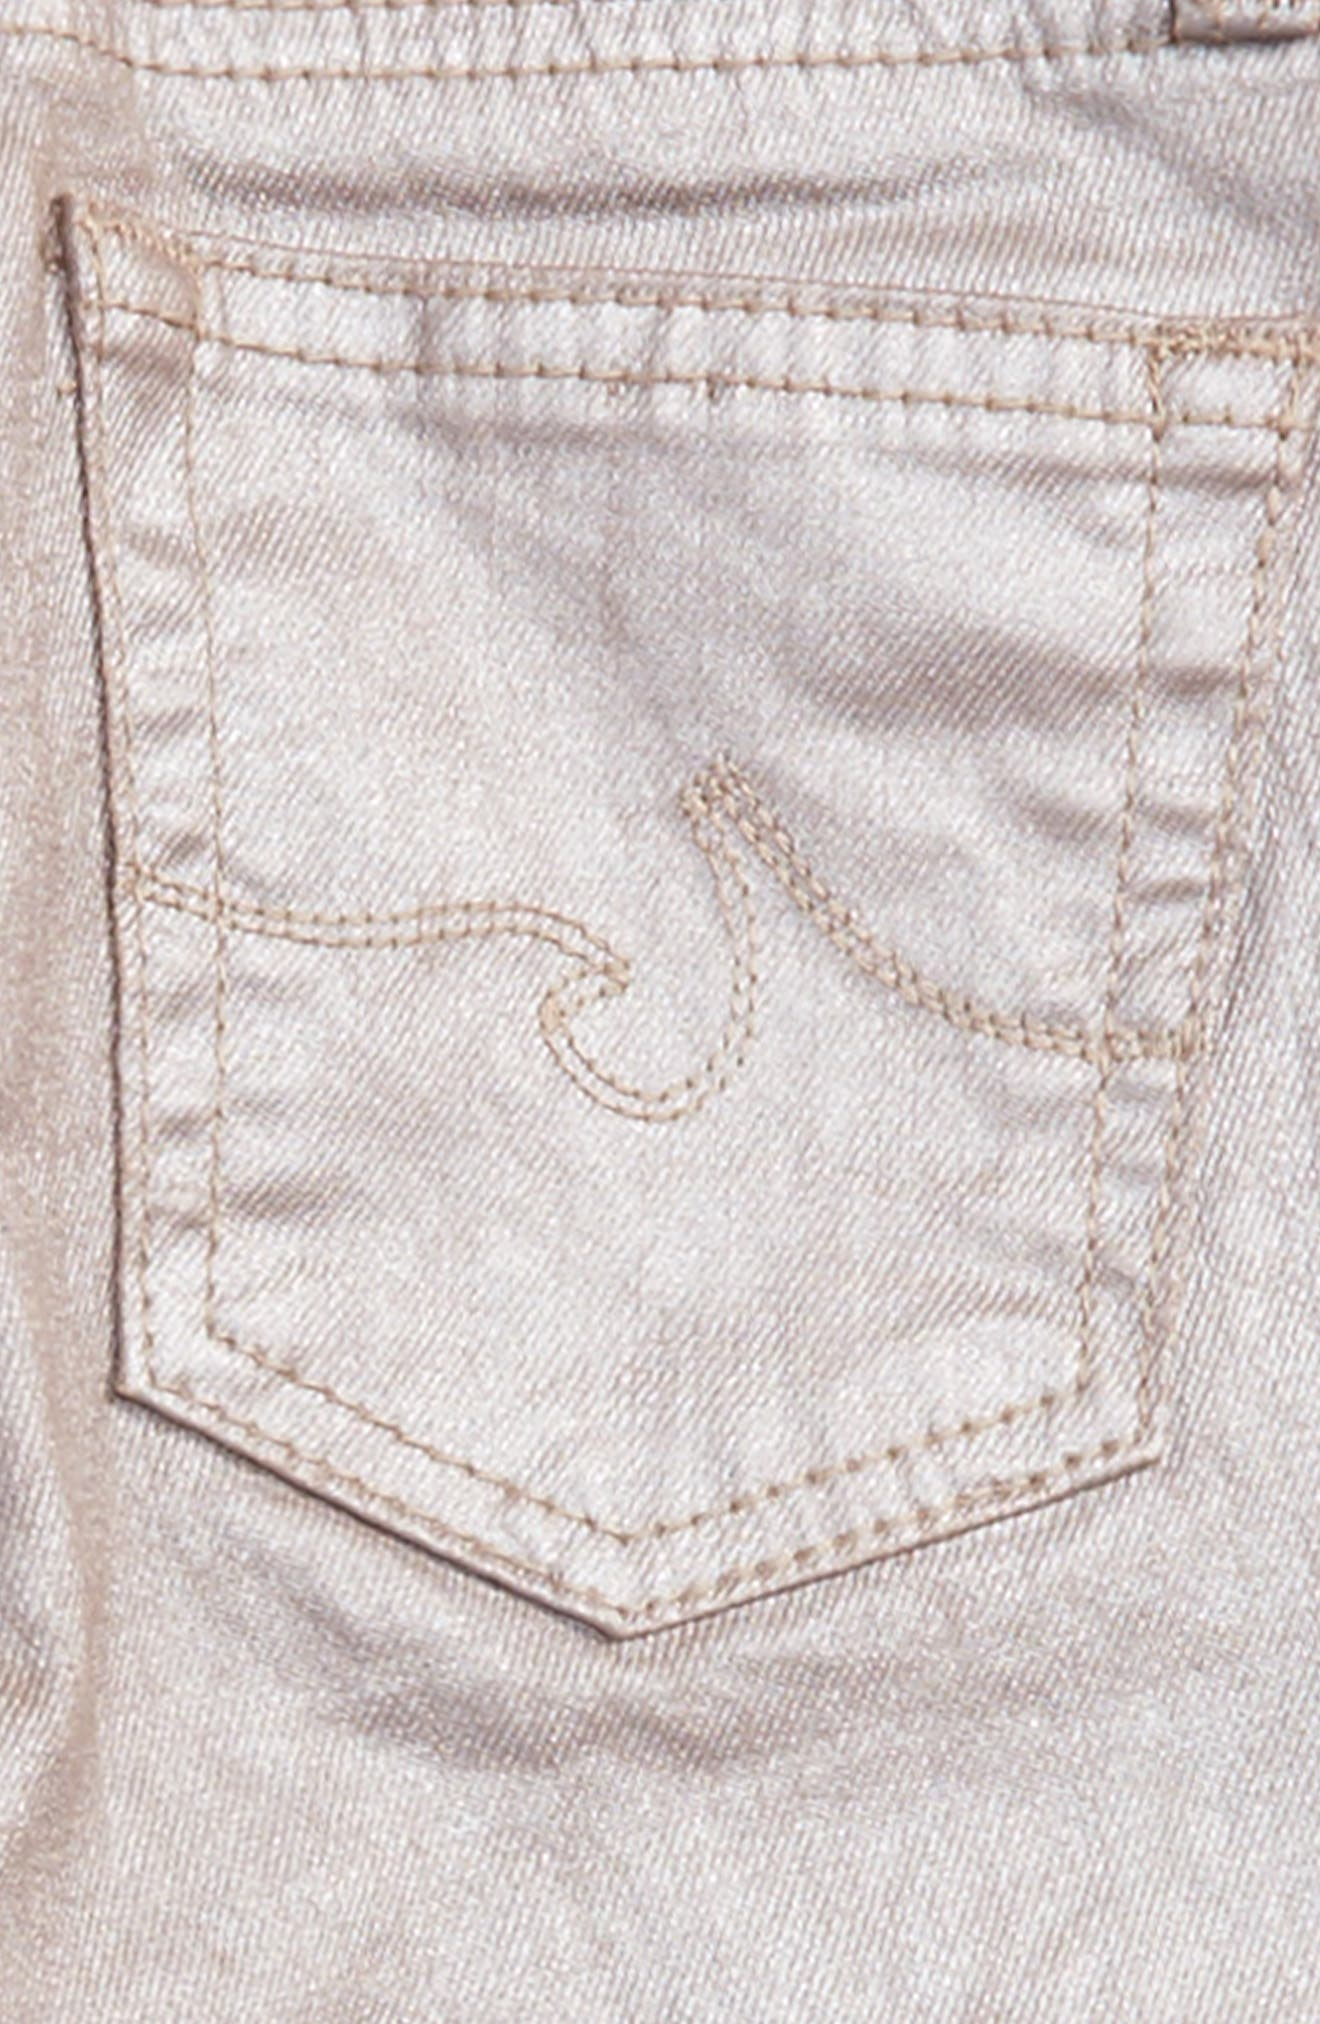 The Sleek Twiggy Skinny Ankle Jeans,                             Alternate thumbnail 3, color,                             692